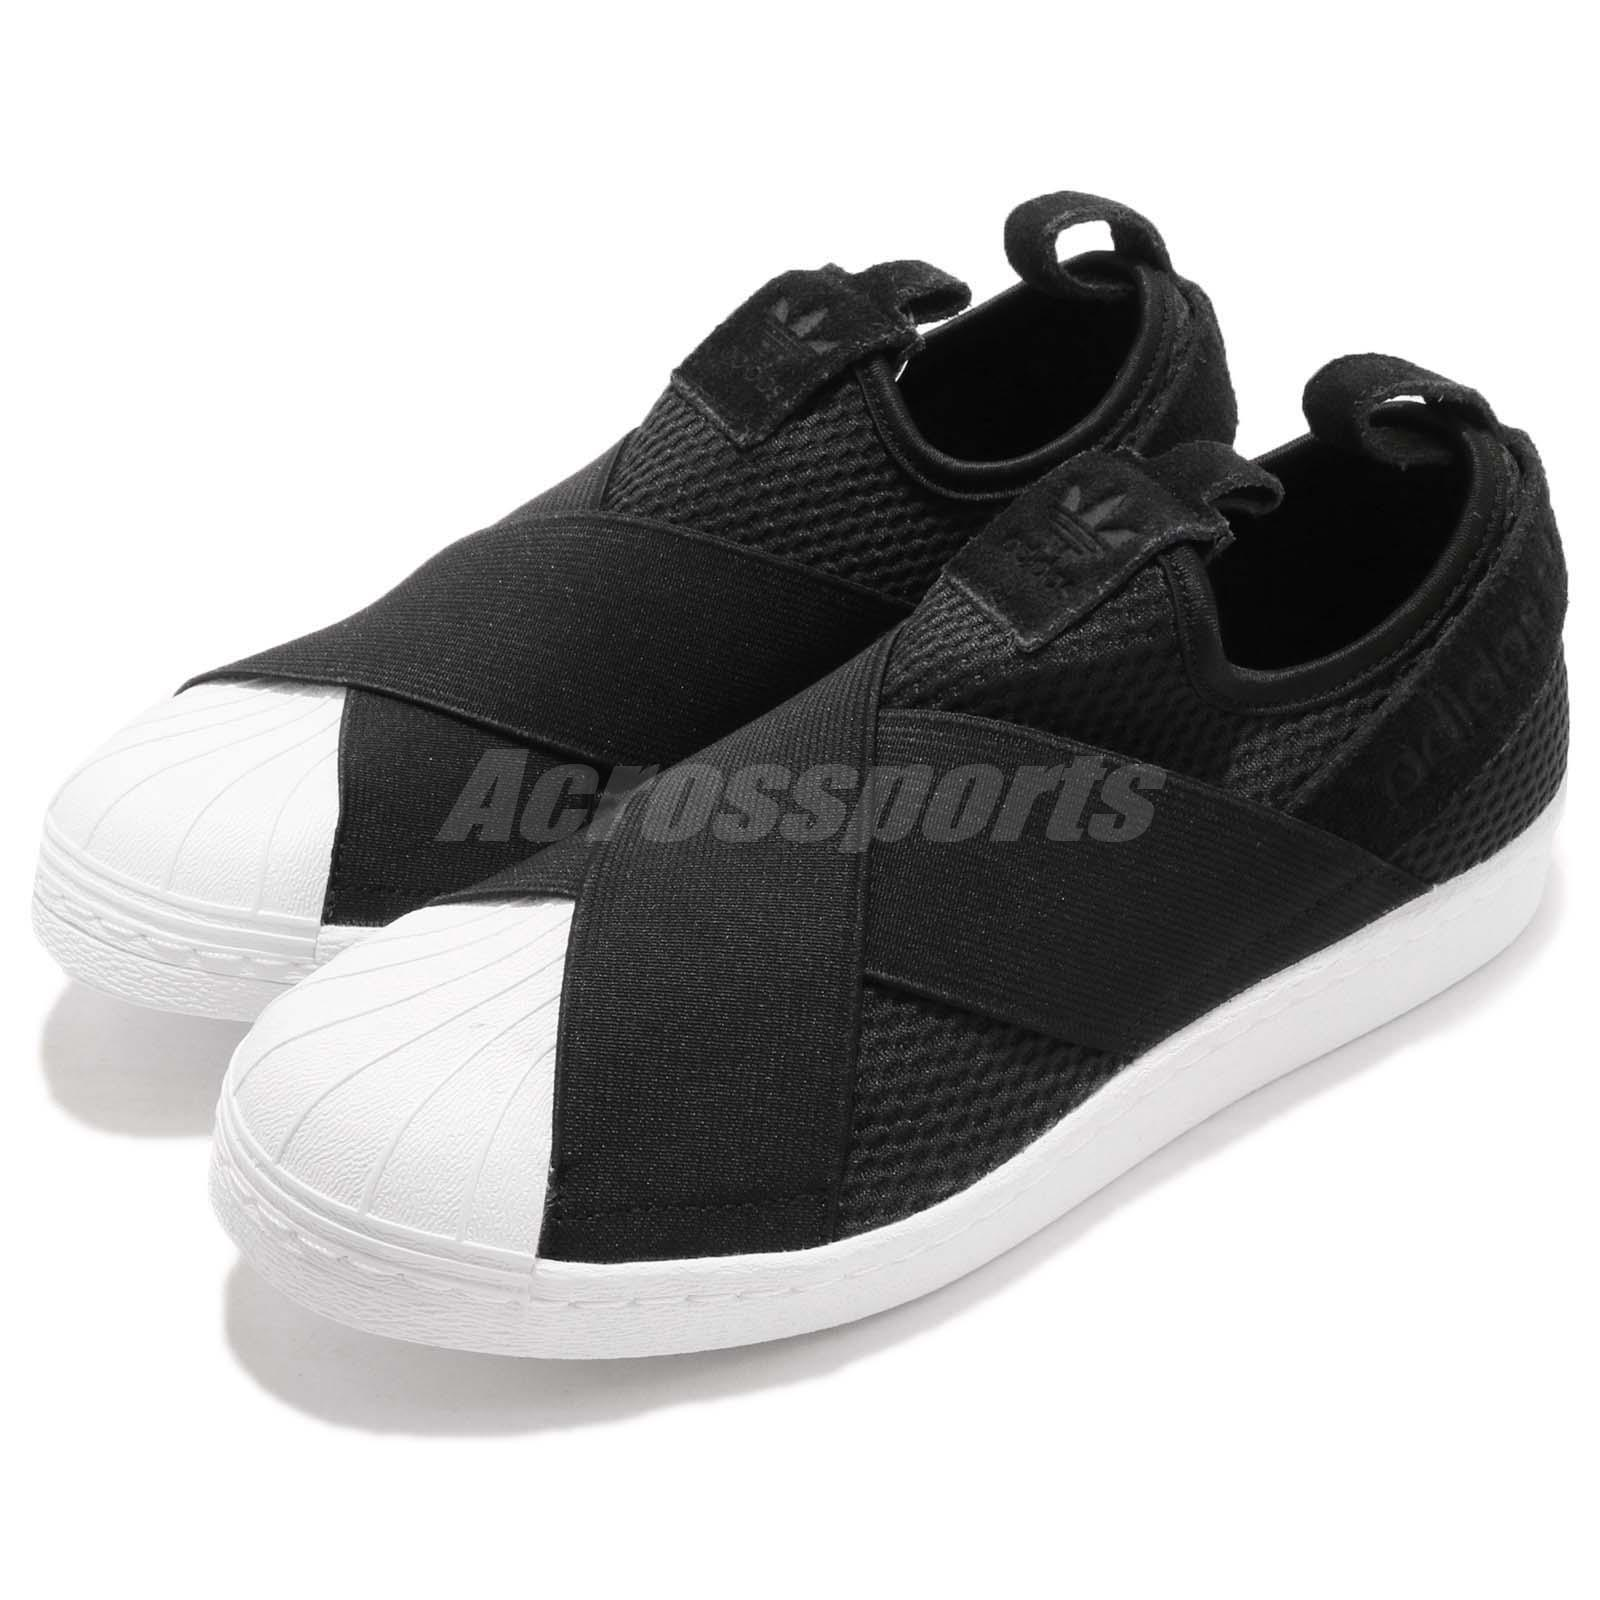 Details about adidas Originals Superstar Slip On Black White Women Casual Shoes Sneaker B37193